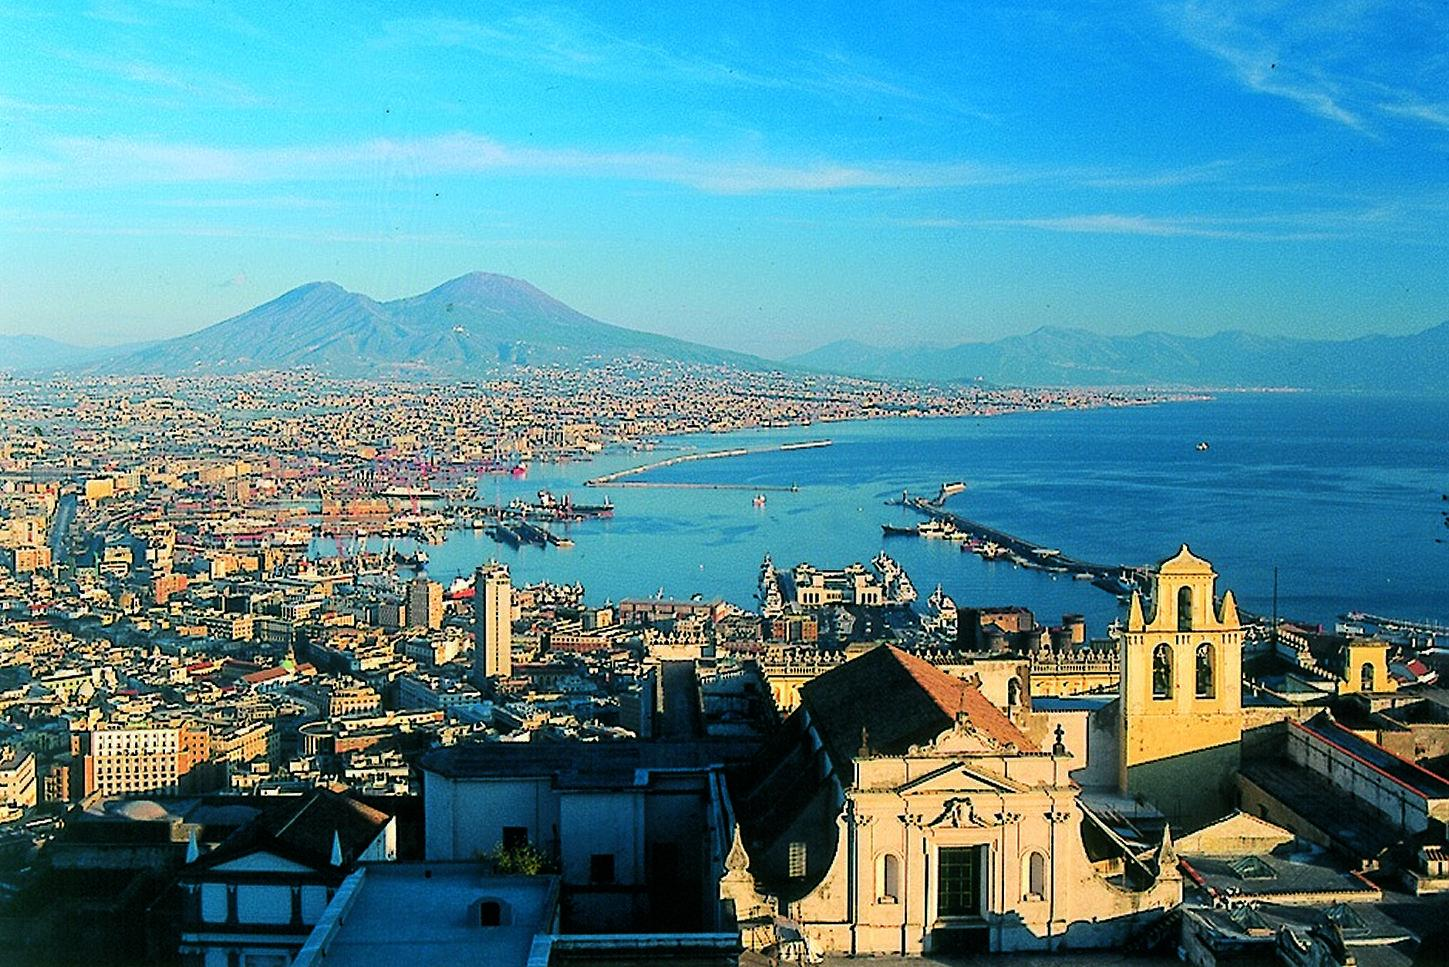 http://www.travelsys.sk/public/users/paxtour/images/fotogaleria_hotel/l_neapol_a_rim_09.jpg